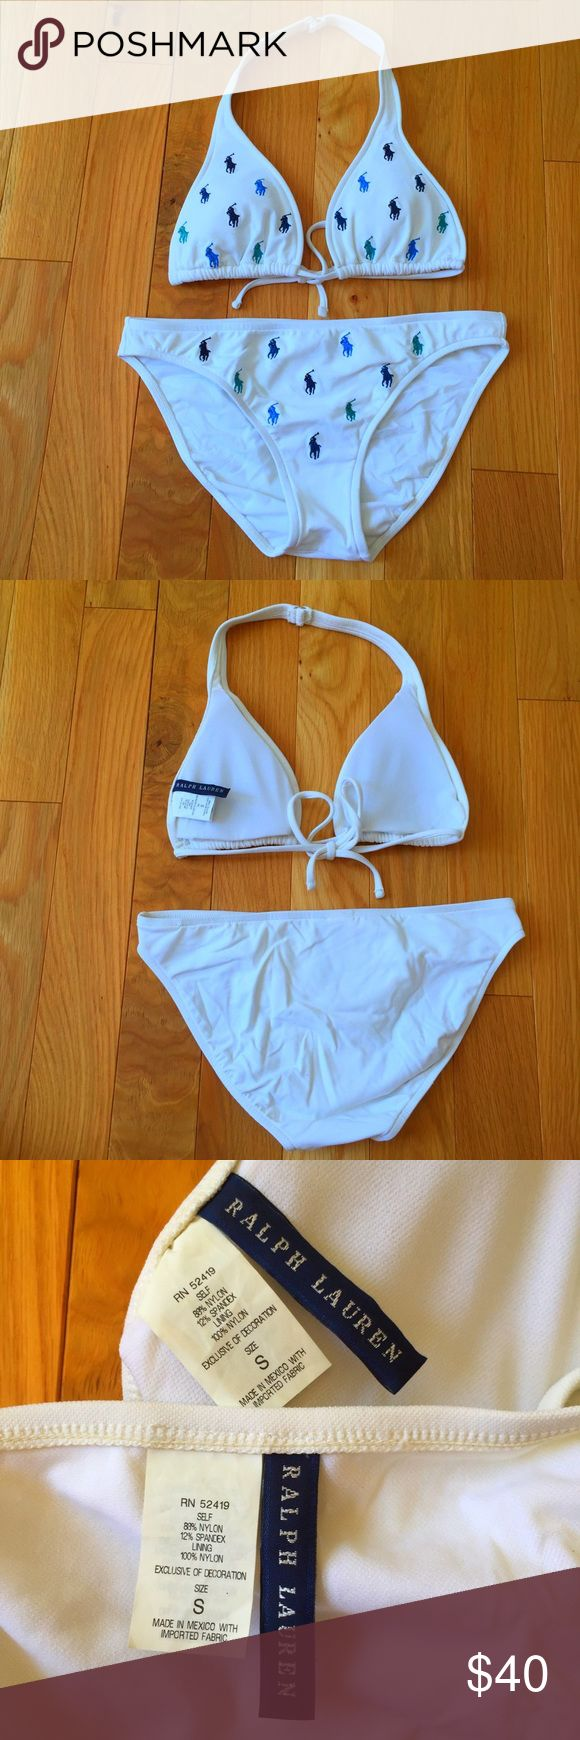 RALPH LAUREN BIG PONY BIKINI A white bikini from the Ralph Lauren Polo Big Pony Collection. It has green, blue, teal, and navy horse / pony / logos on the top and bottom. So cute and comfy and very flattering. Padded top, but it can be removed. String triangle bikini top. Good coverage on the bottoms, not cheeky but also not like a diaper! Top Retail: $75.00 + S&H Bottoms Retail: $75.00 + S&H — 📦 Trades? Ask! 📲 PayPal? Rarely, but ask! 💻 NO MERCARI/VINTED. 🚬 SMOKE FREE HOME. 💯…